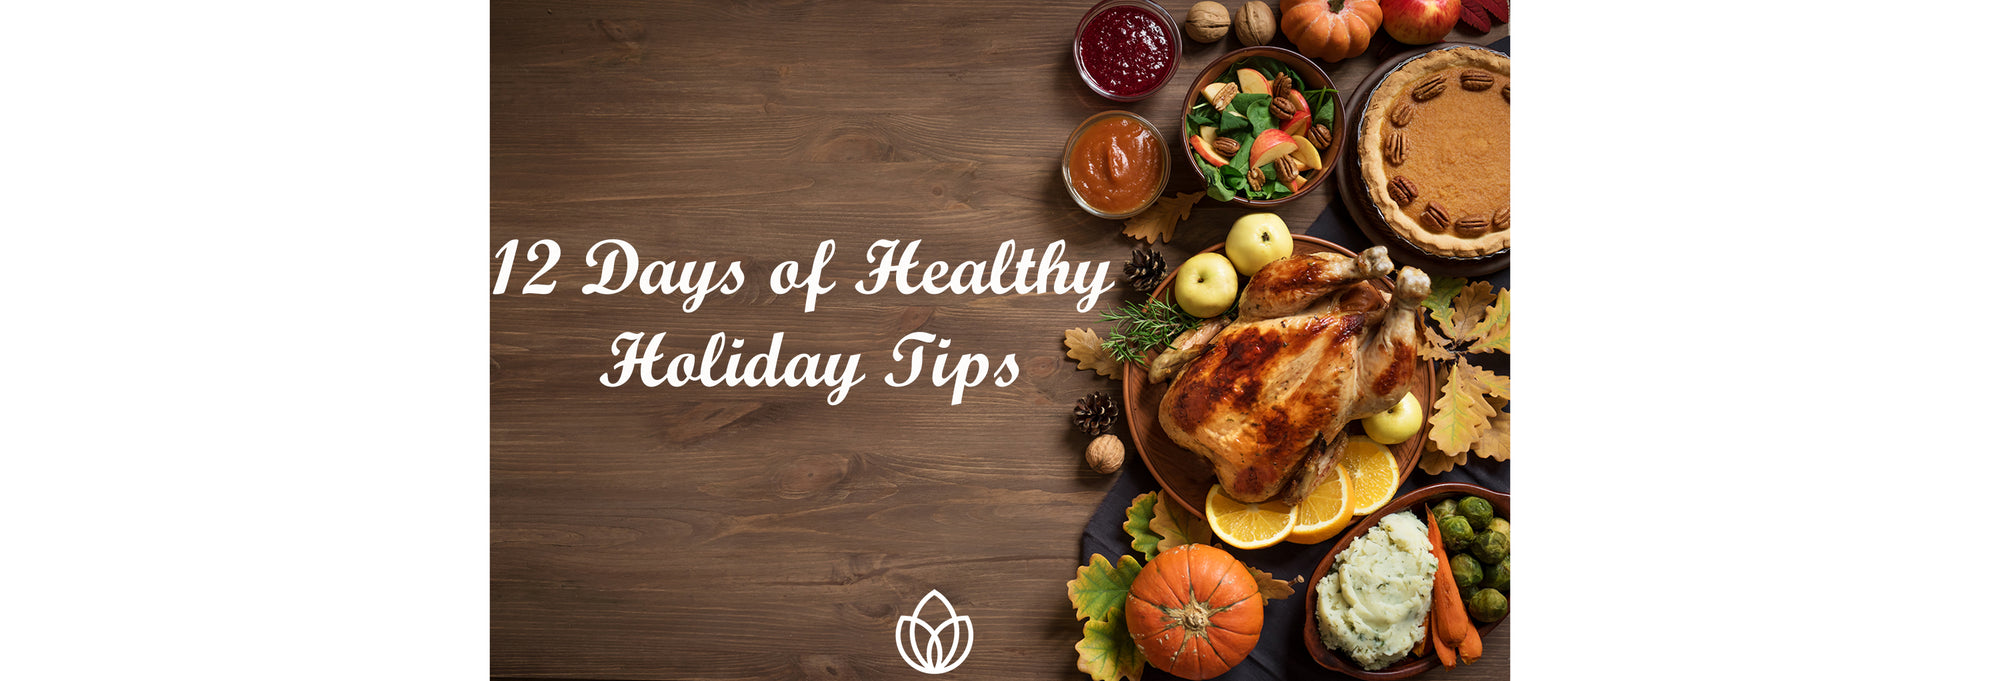 12 Days of Healthy Holiday Tips